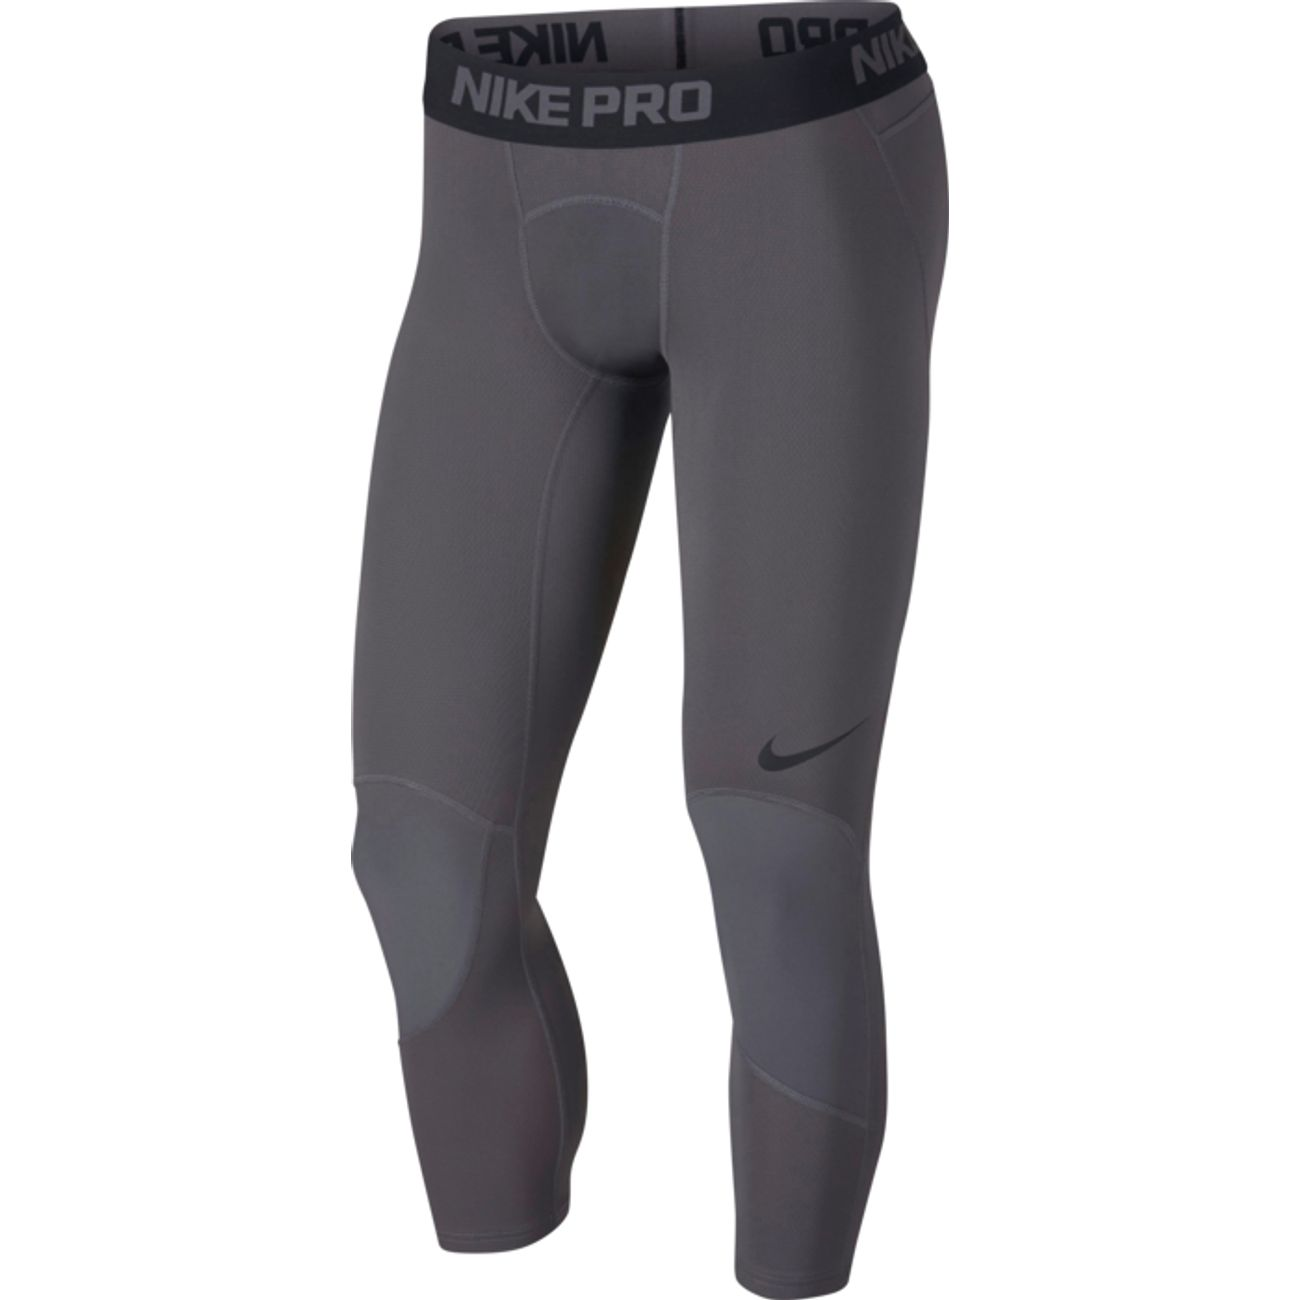 COLLANT Basketball homme NIKE DRY TIGHT 3/4